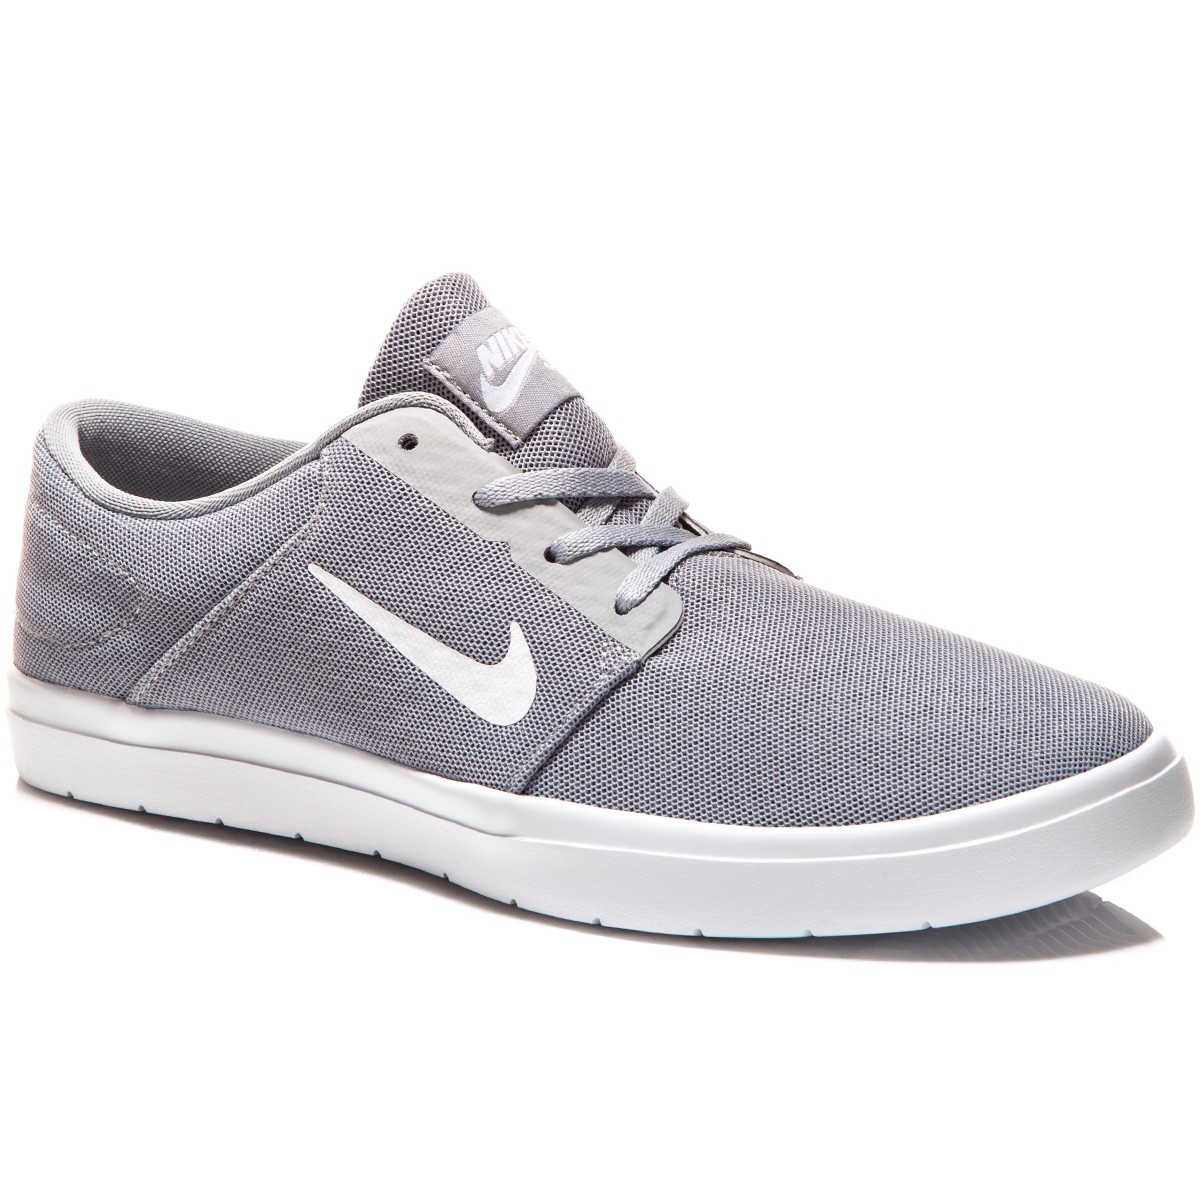 Nike SB Portmore Ultralight Shoes - Wolf Grey/Cool Grey/White - 8.0